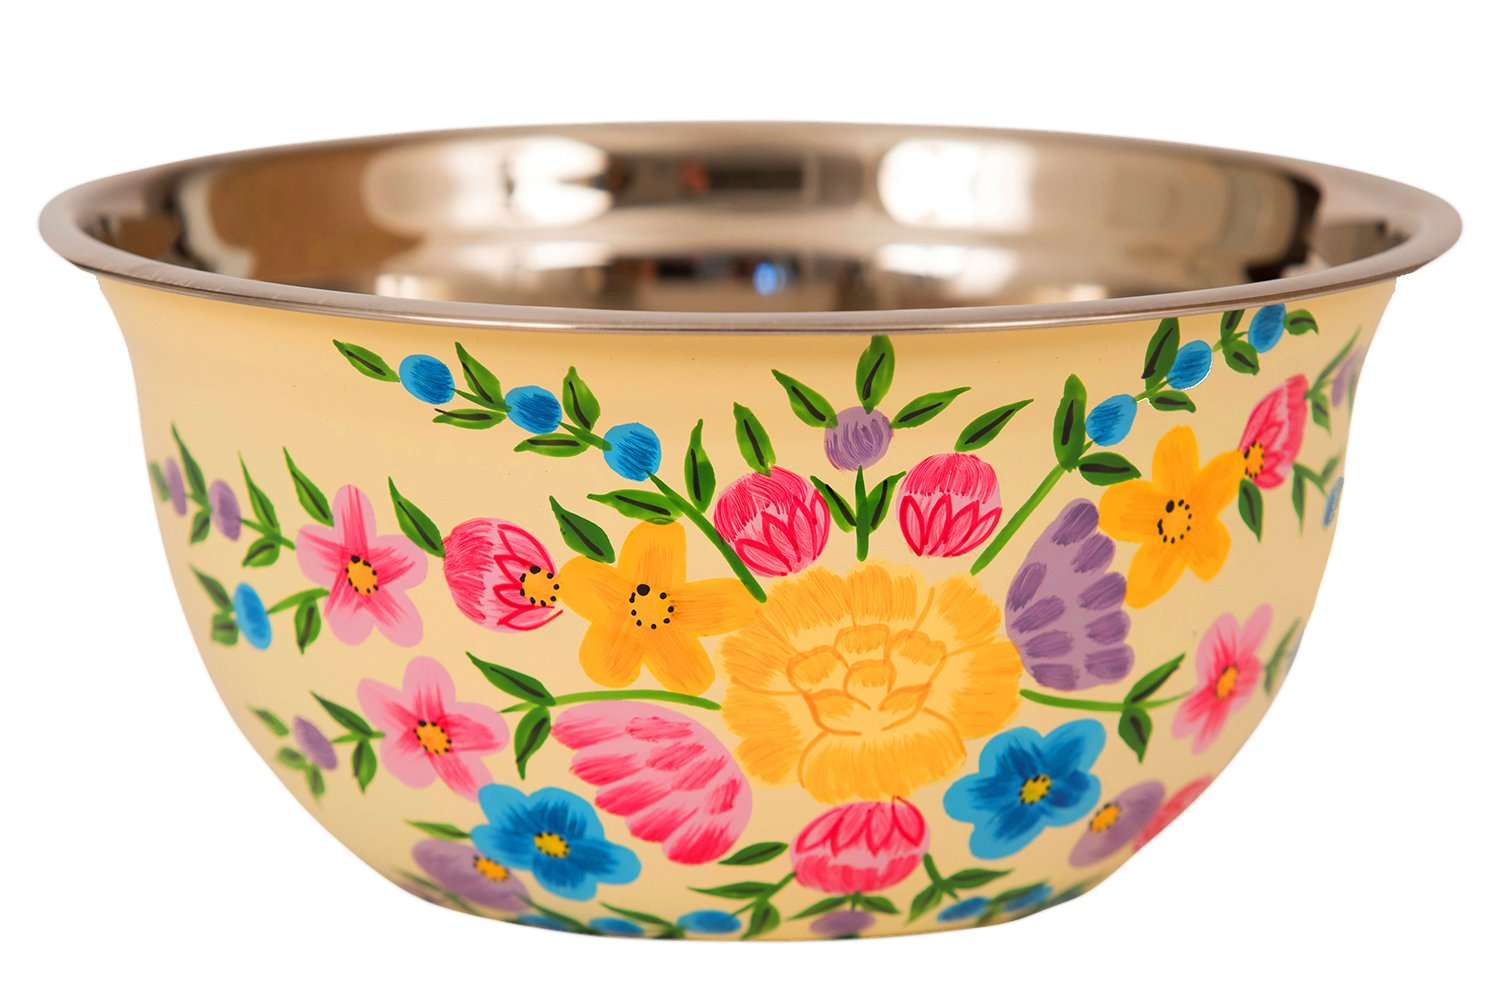 Hand Painted Stainless Steel Bowl – Large Salad Bowl, Fruit Bowl, Mixing Bowl, Decorative, Handmade Floral Art Bowl for Serving and Home Decor, 10 Inch Diameter, 3.8 quart Volume.